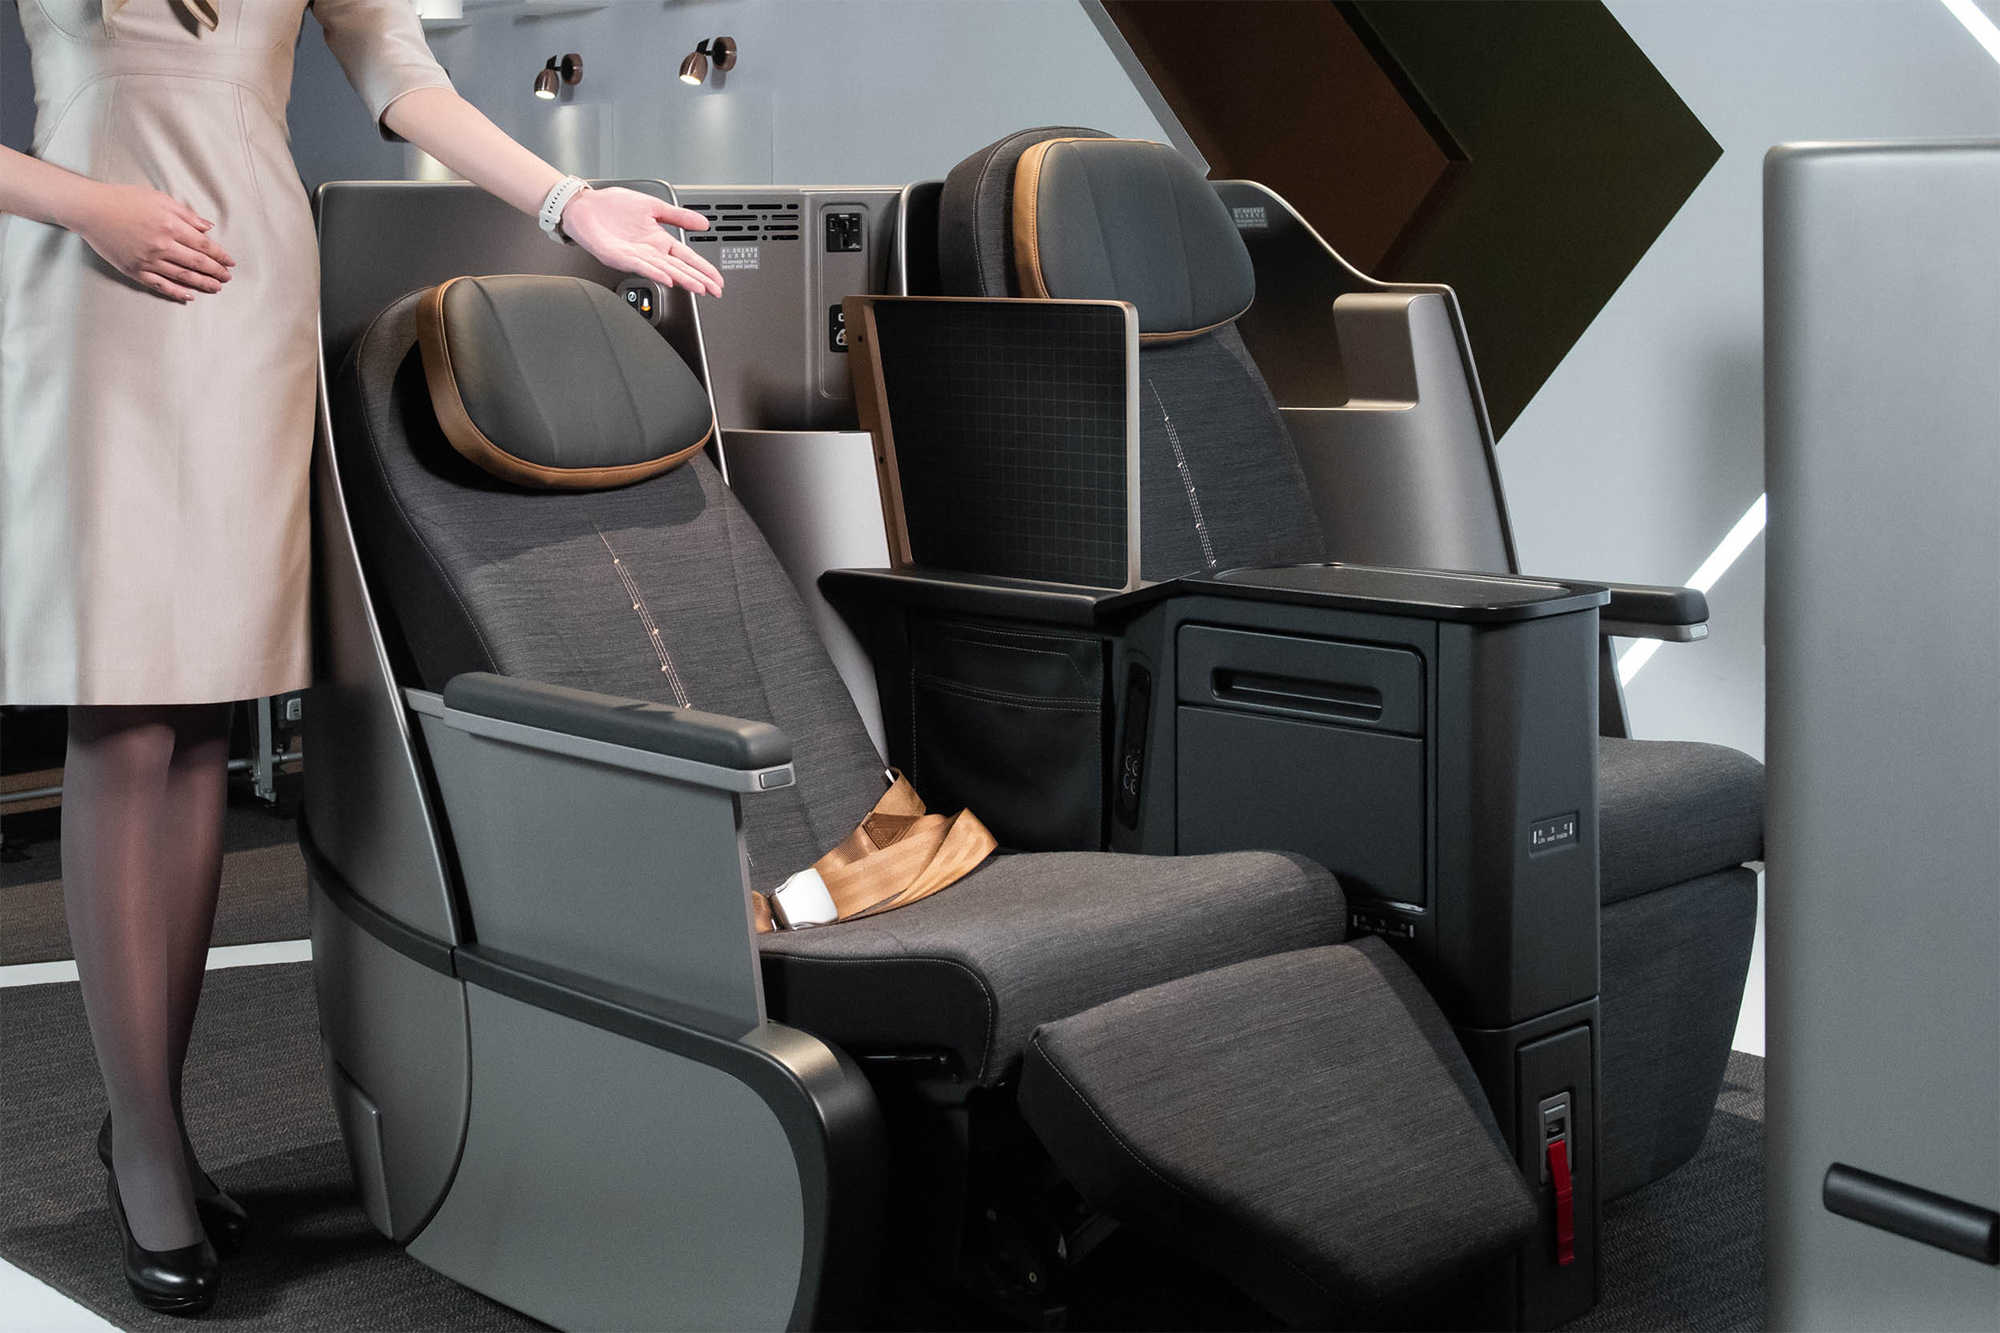 Taiwan's full-service startup airline Starlux reveals flat-bed Business Class